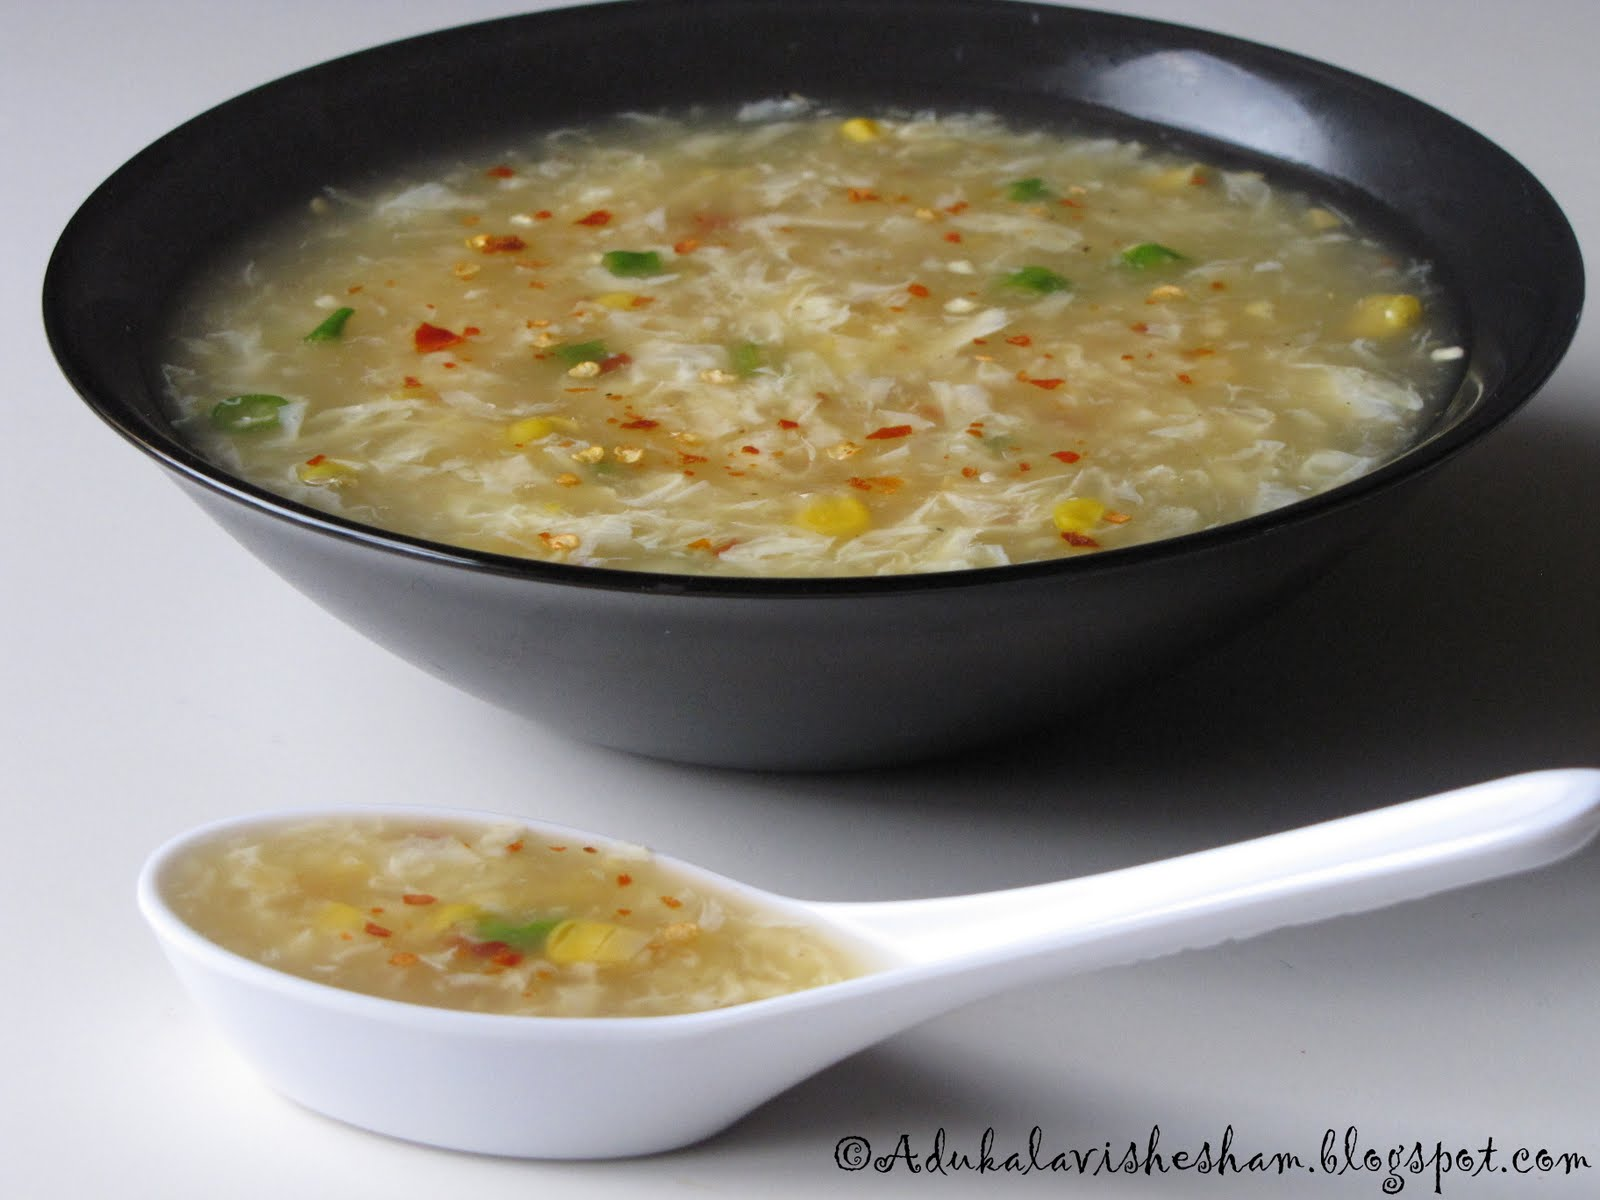 ... comforting sweet corn chicken soup the sweet corn kernels and spicy